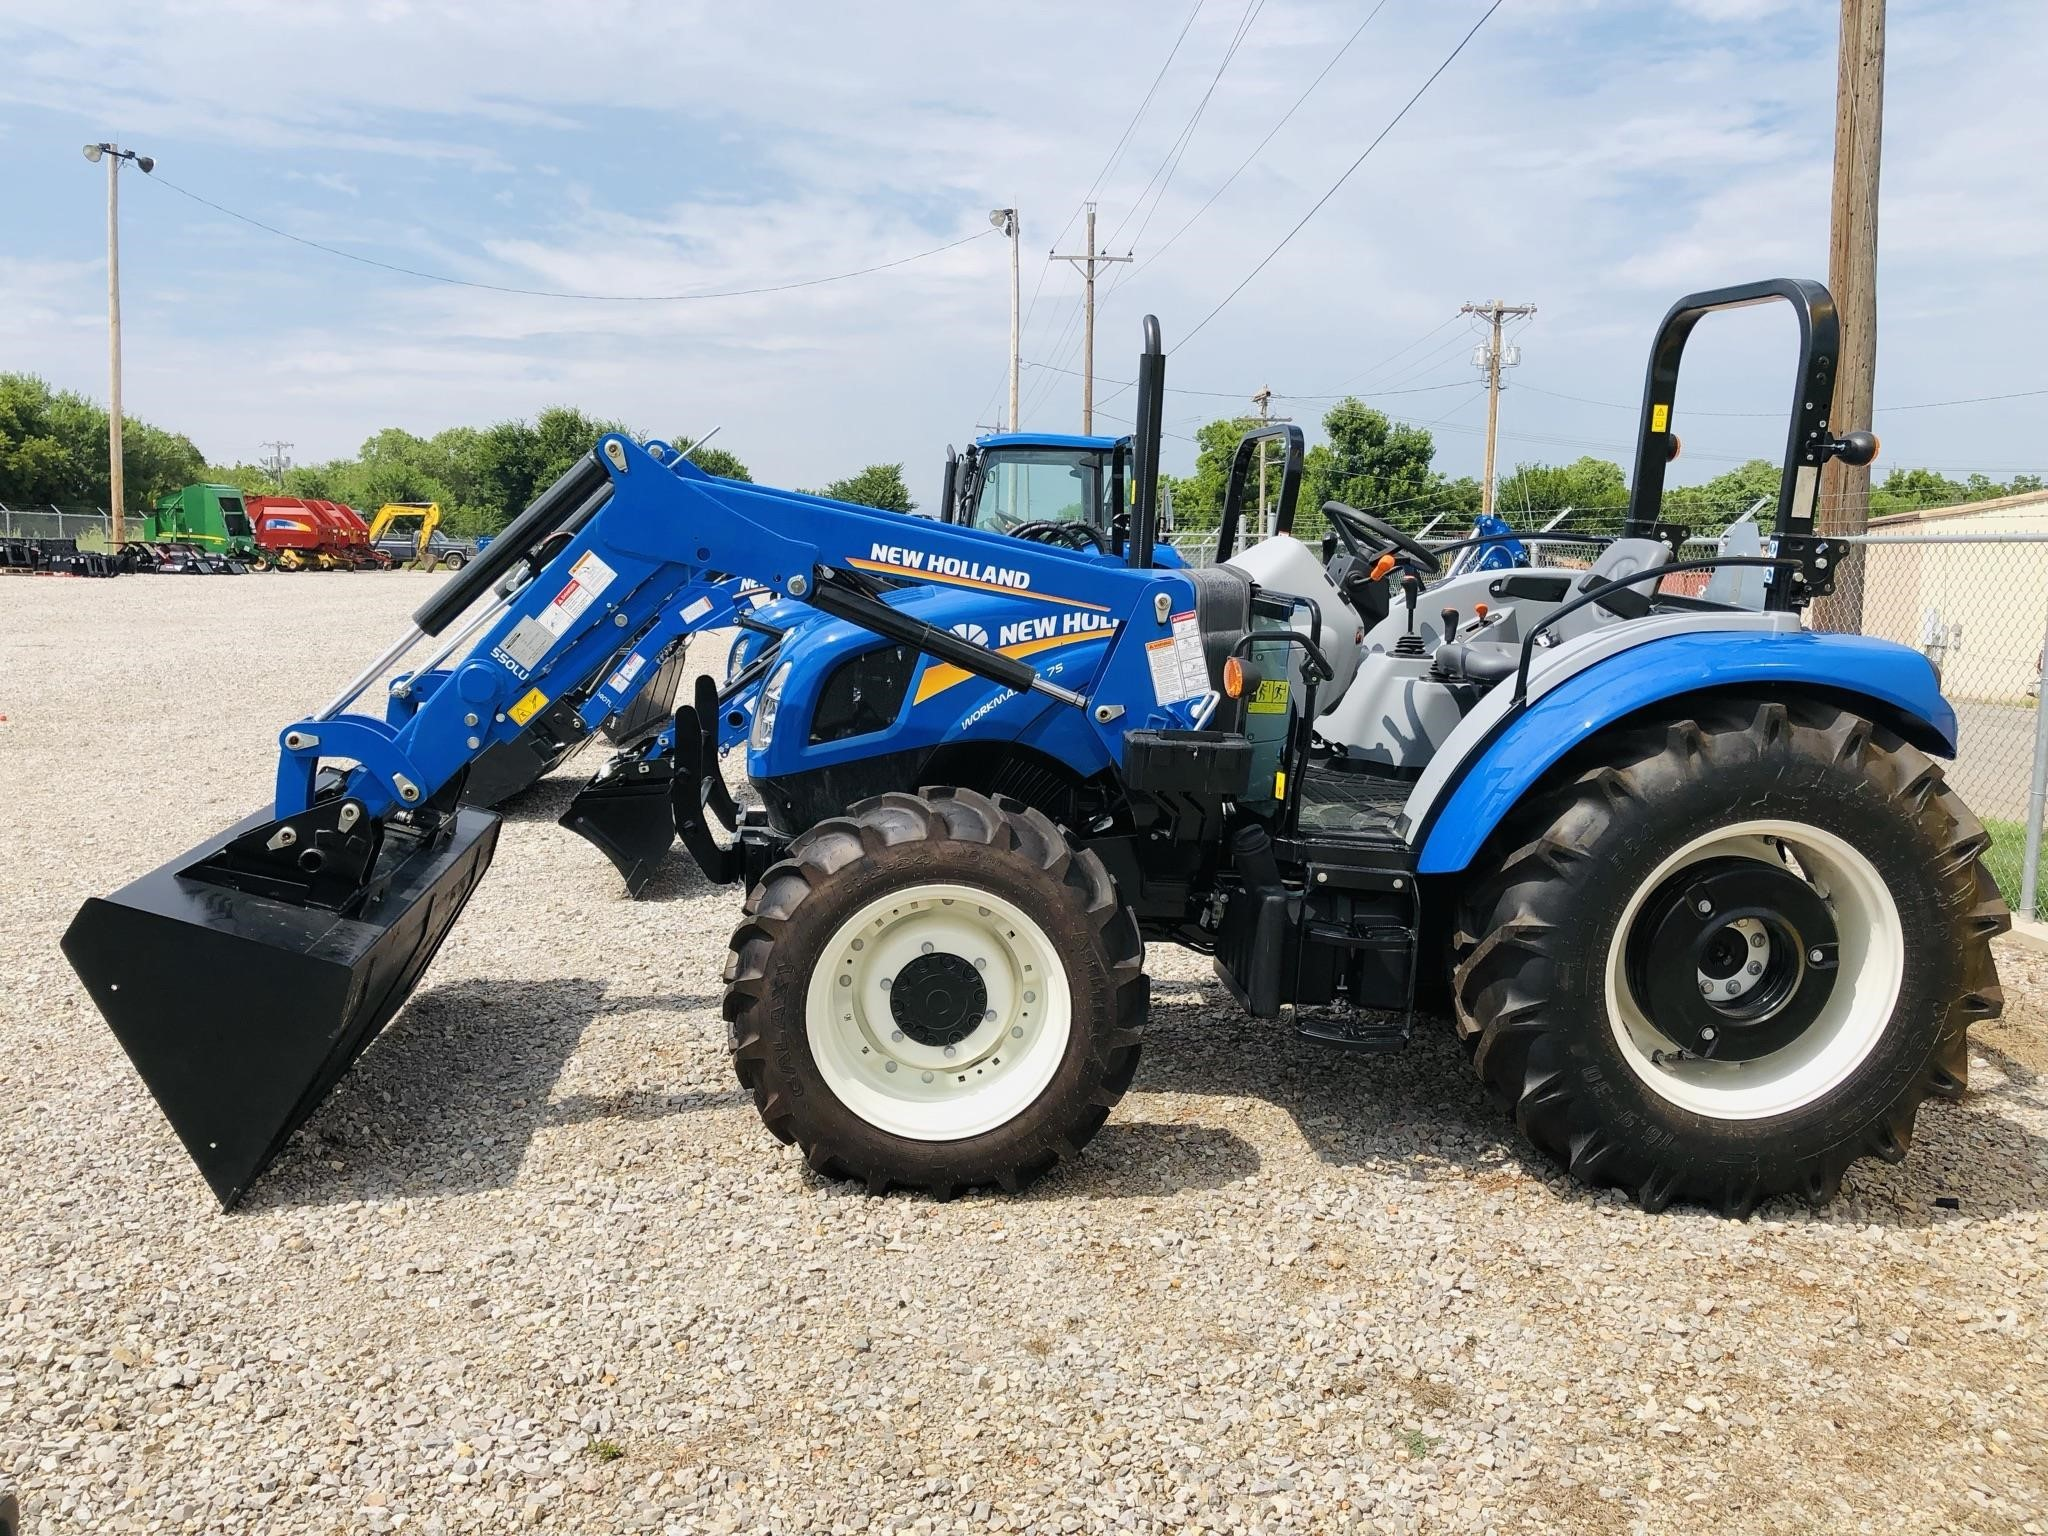 2021 New Holland Workmaster 75 Tractor